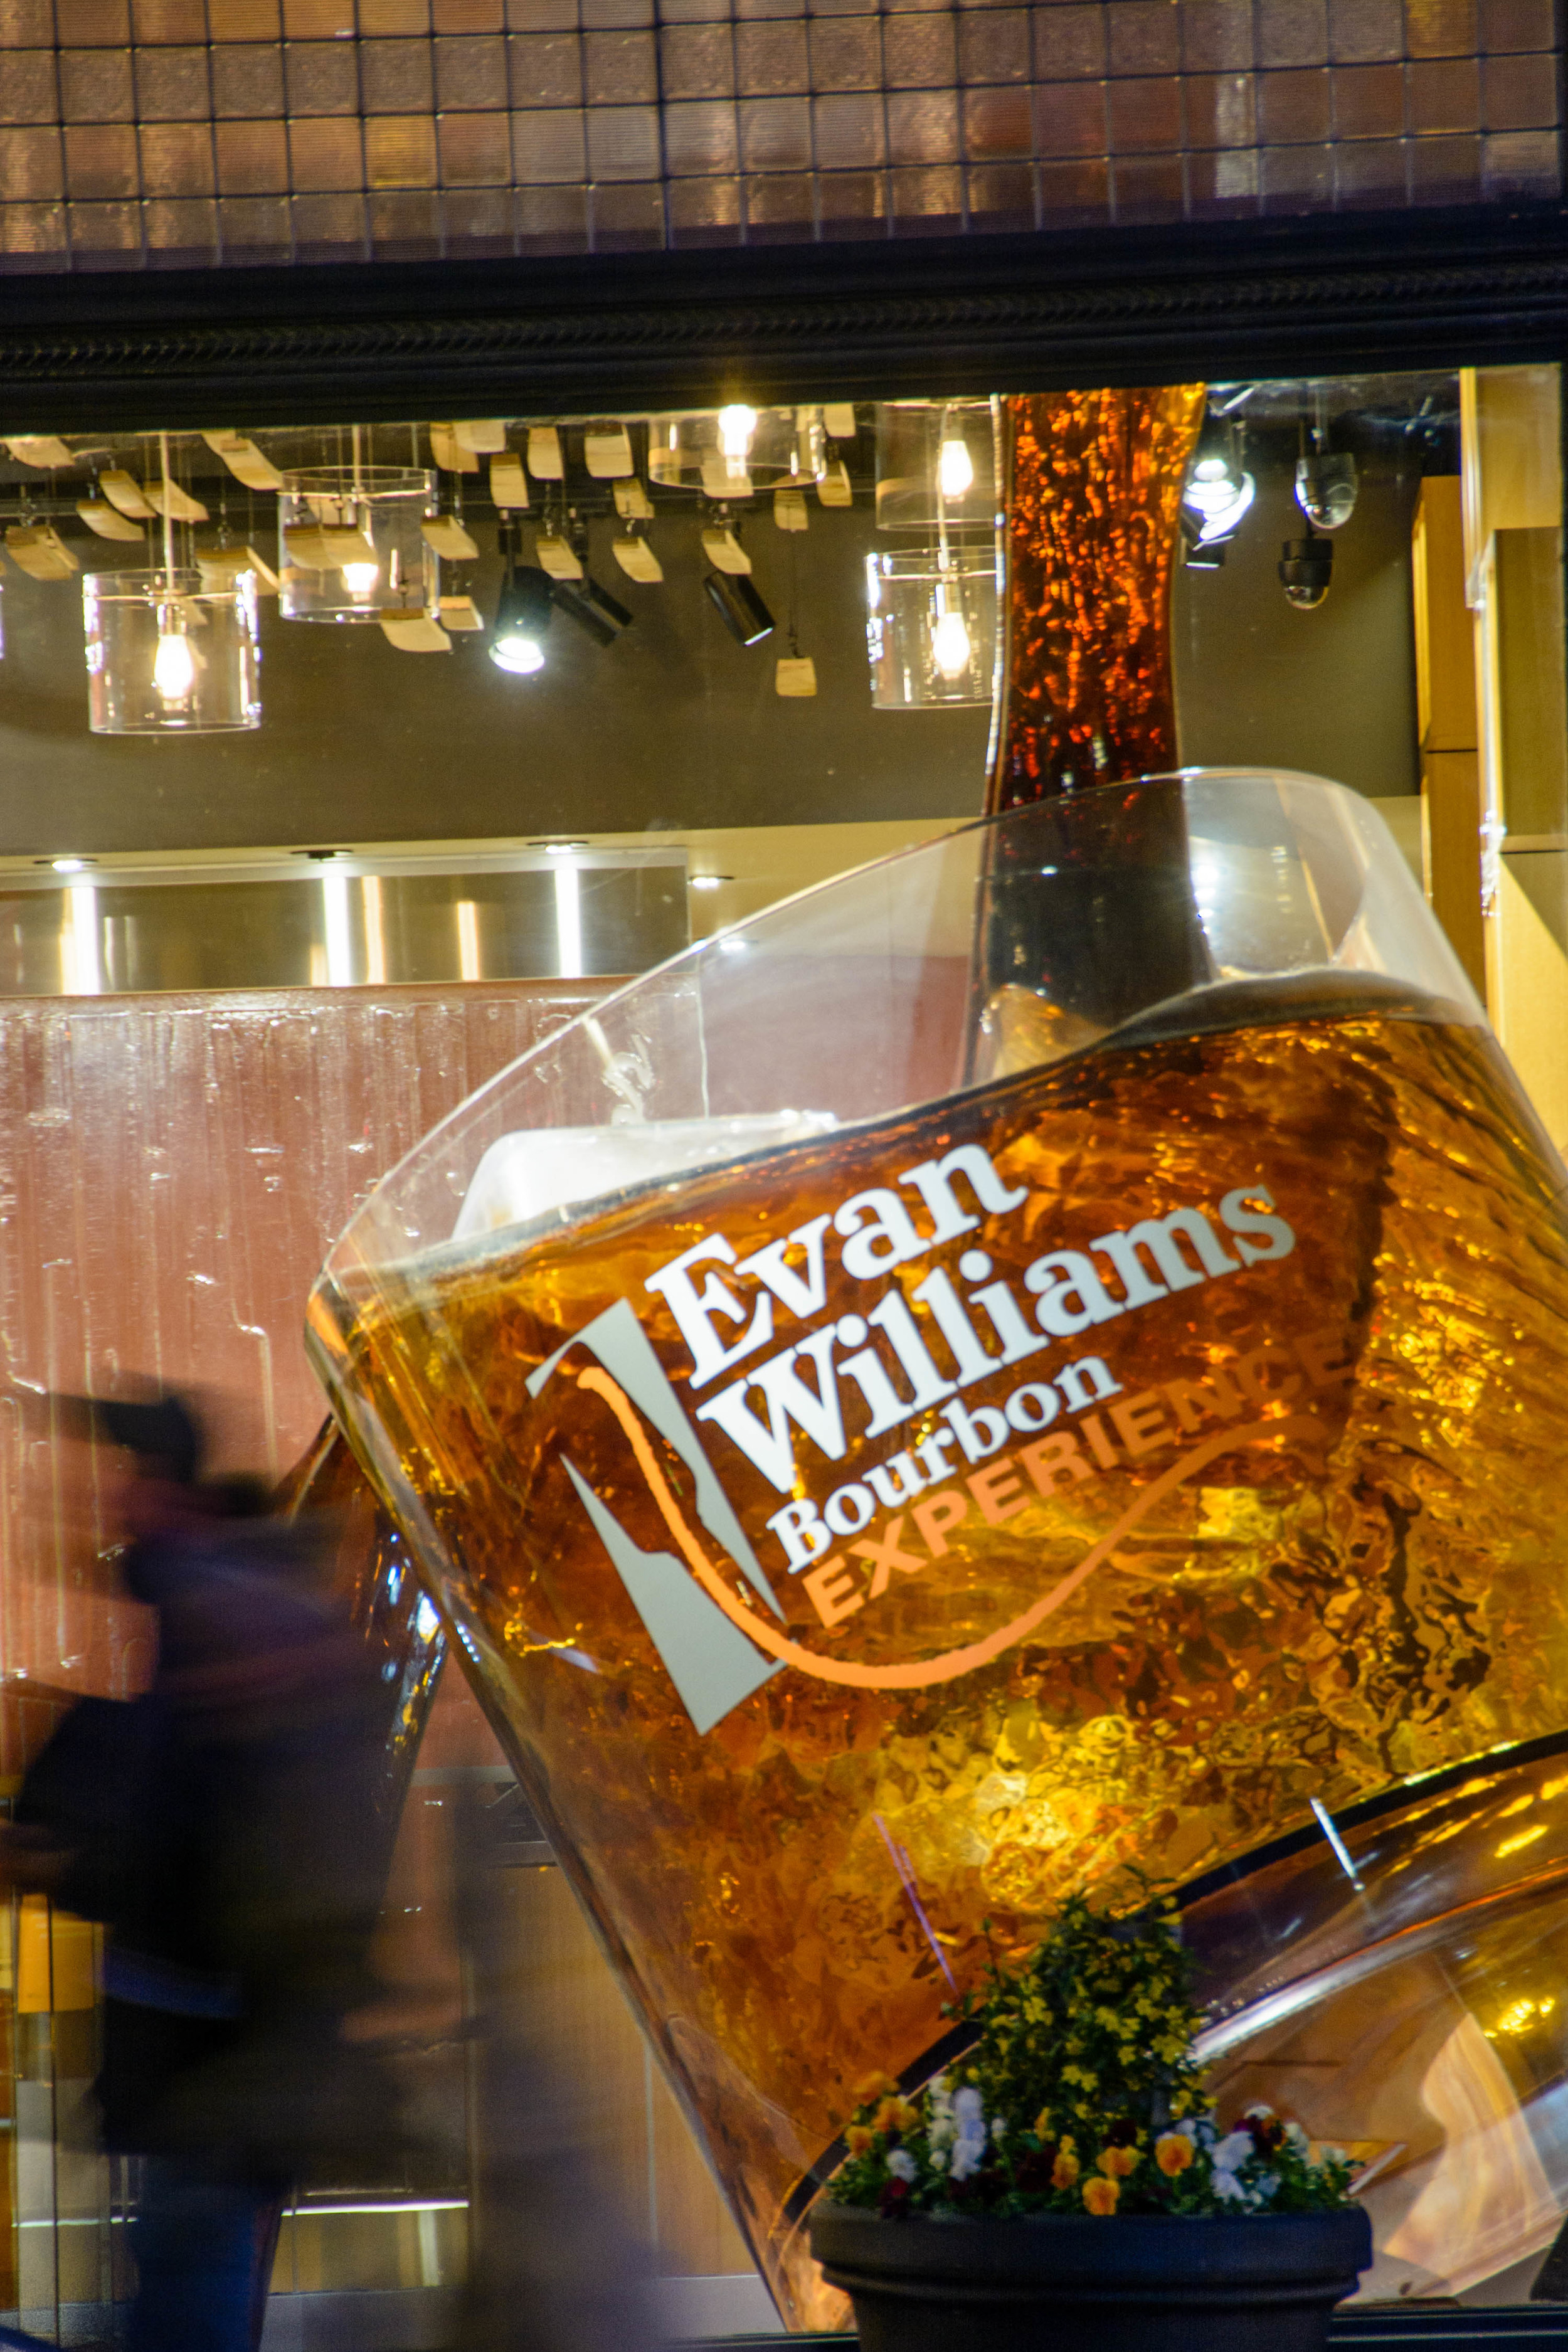 Louisville's Urban Bourbon Trail includes the Evan Williams Bourbon Experience, along Whiskey Row, a tour of a micro distillery and tasting.